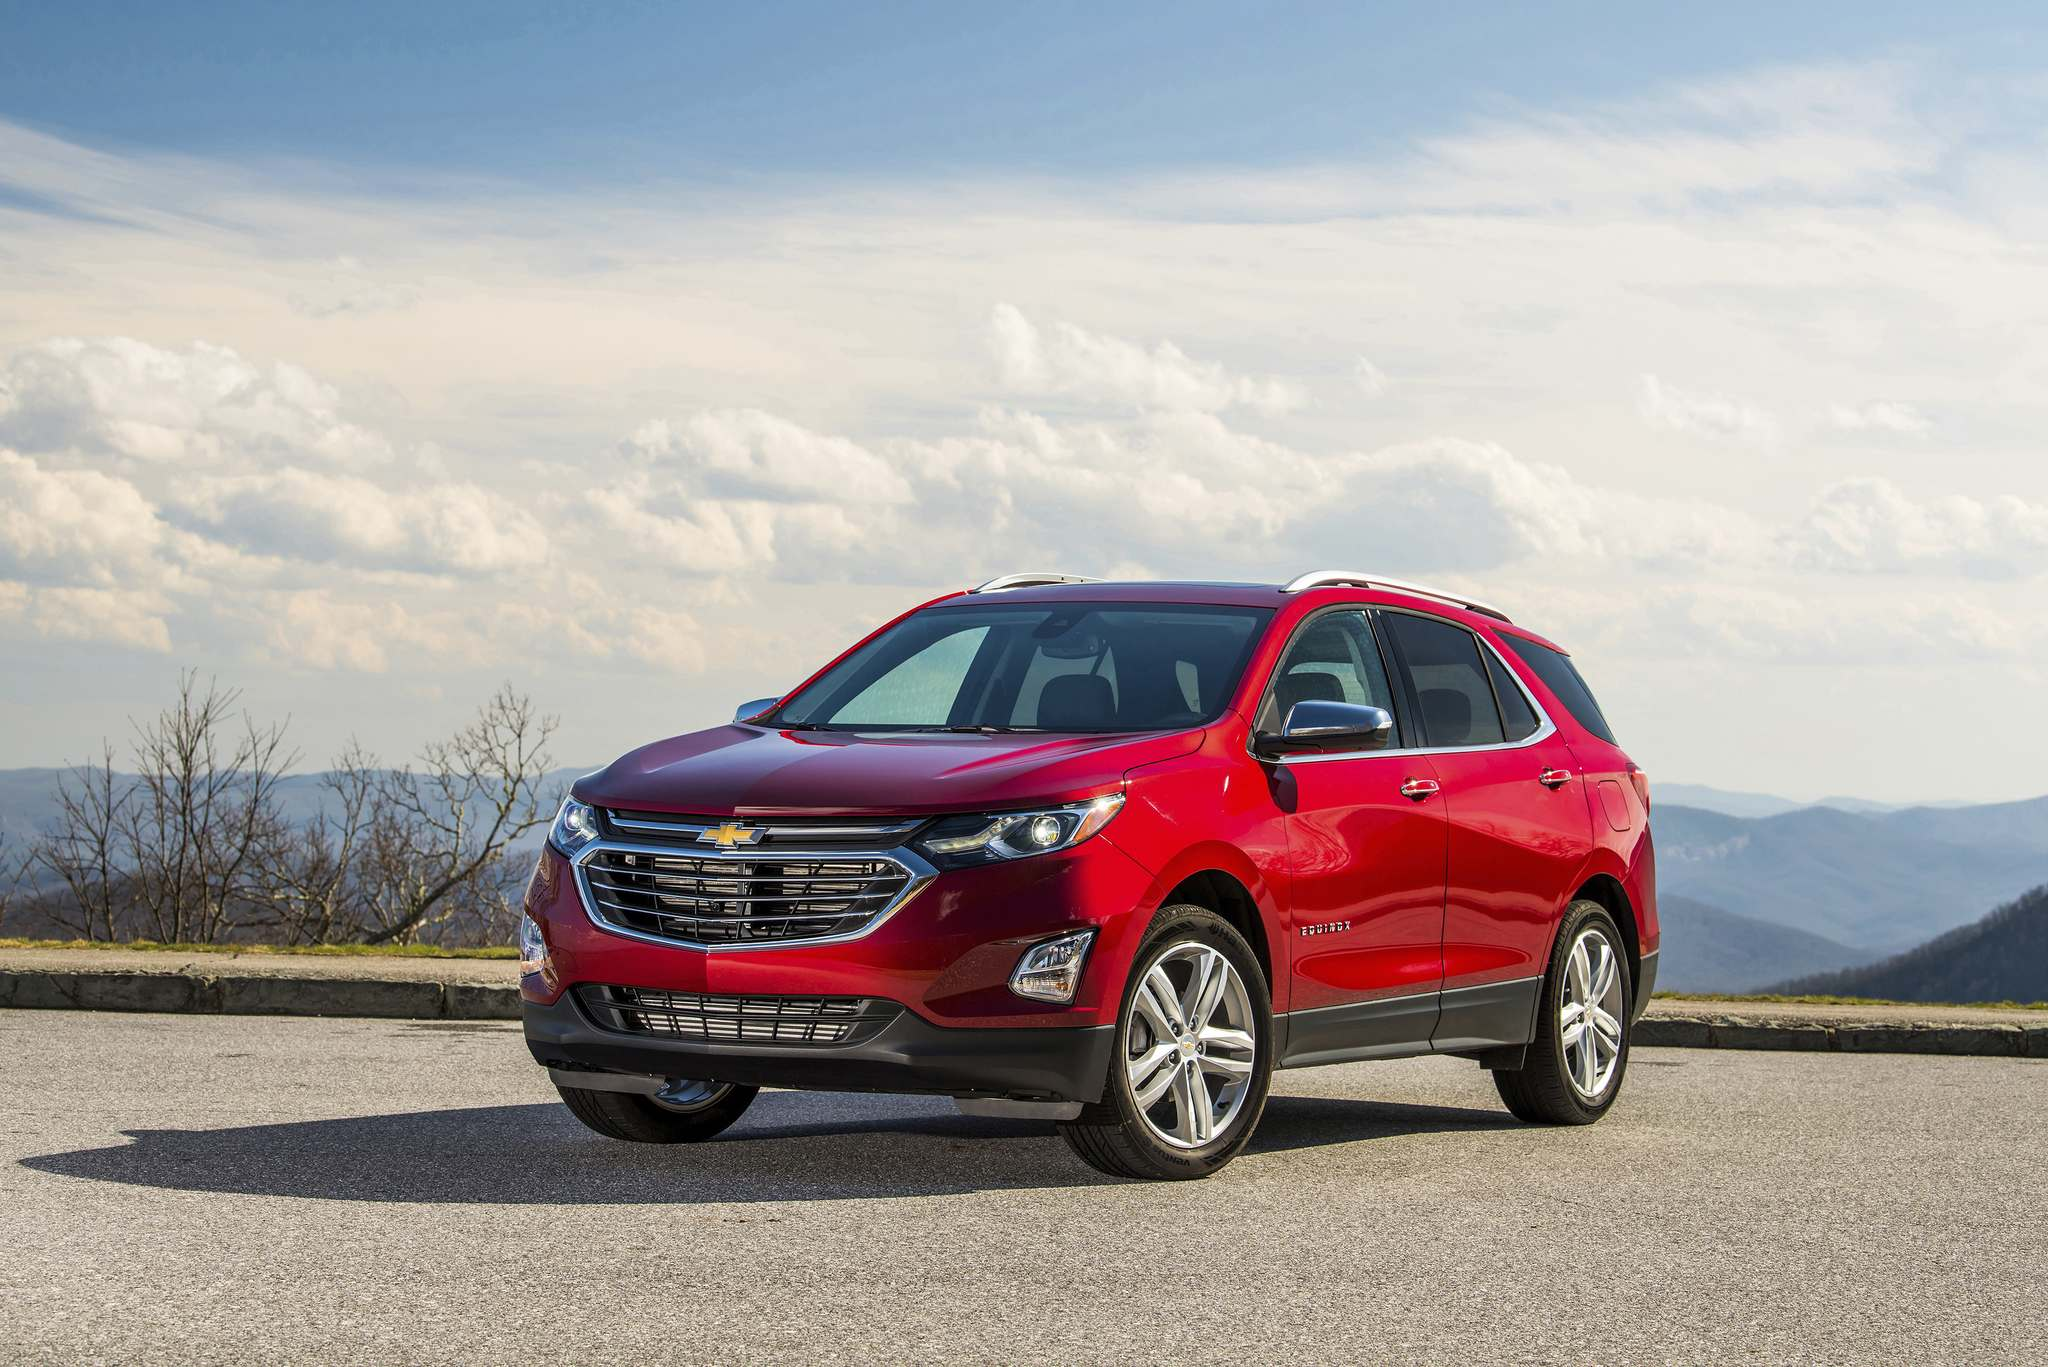 General Motors CanadaThe 2018 Chevrolet Equinox is a fresh and modern SUV with an all-new athletic look echoing the global Chevrolet design cues seen on vehicles such as the Cruze, Bolt EV and Trax.